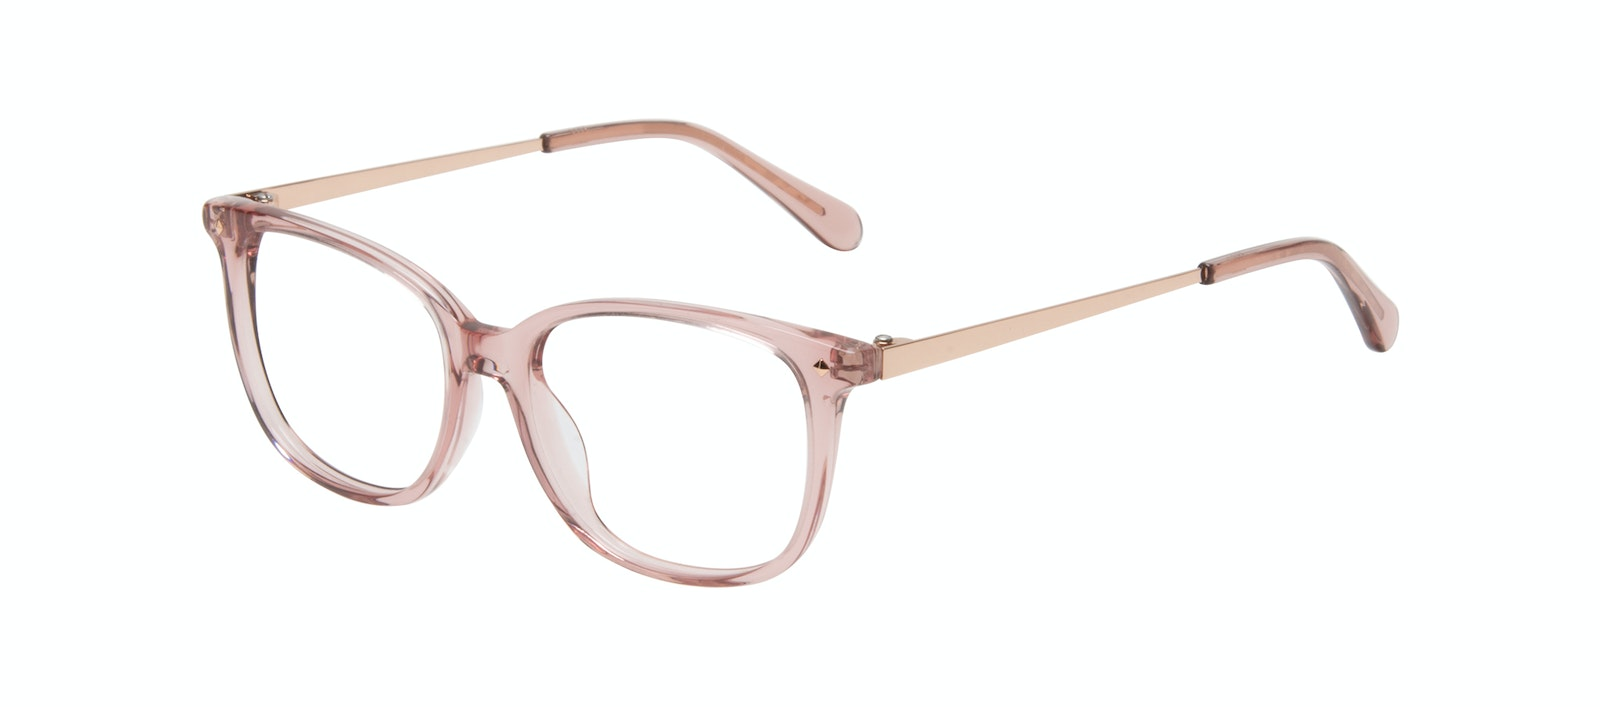 Affordable Fashion Glasses Rectangle Square Eyeglasses Women Refine XS Rose Tilt